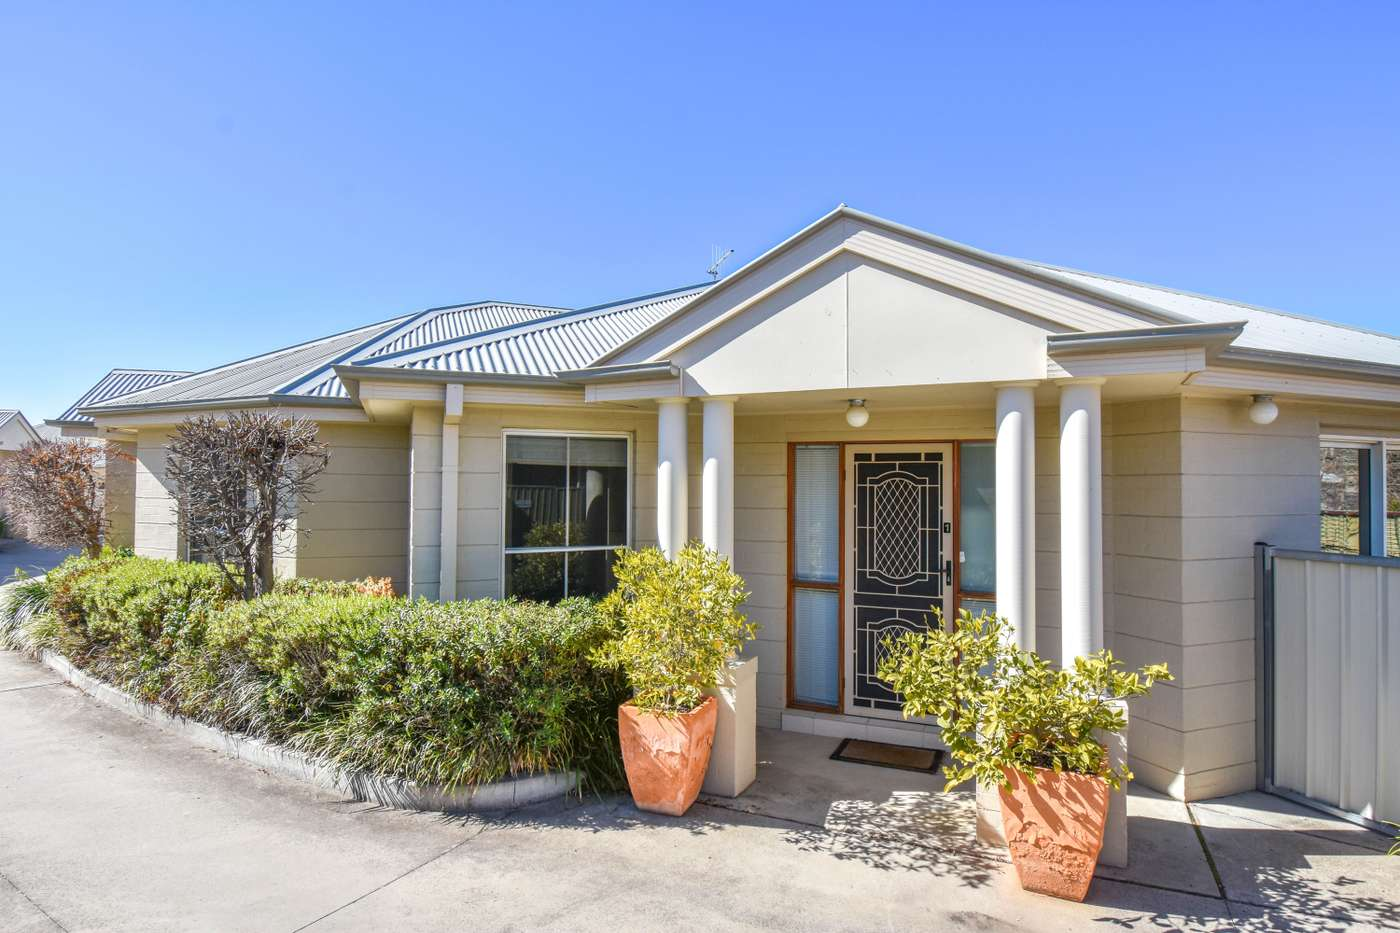 Main view of Homely house listing, 1/55 Brilliant Street, Bathurst, NSW 2795